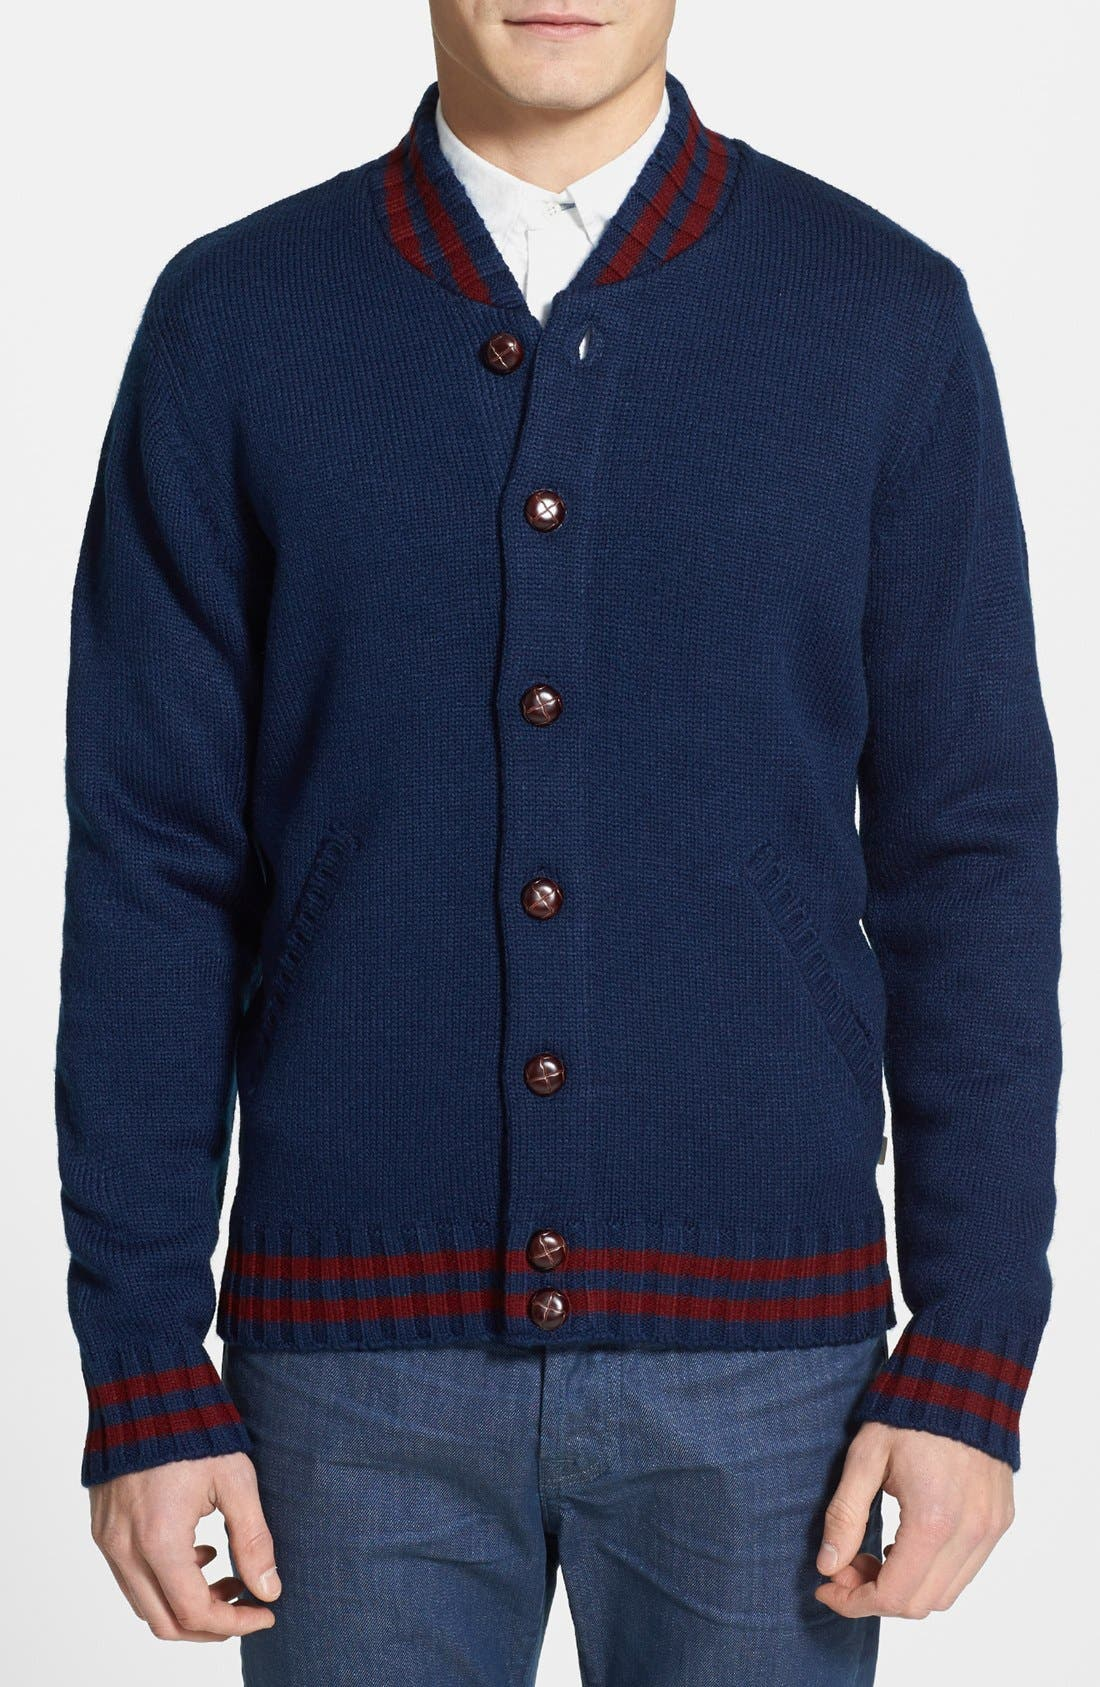 Main Image - Obey 'Campus' Cardigan